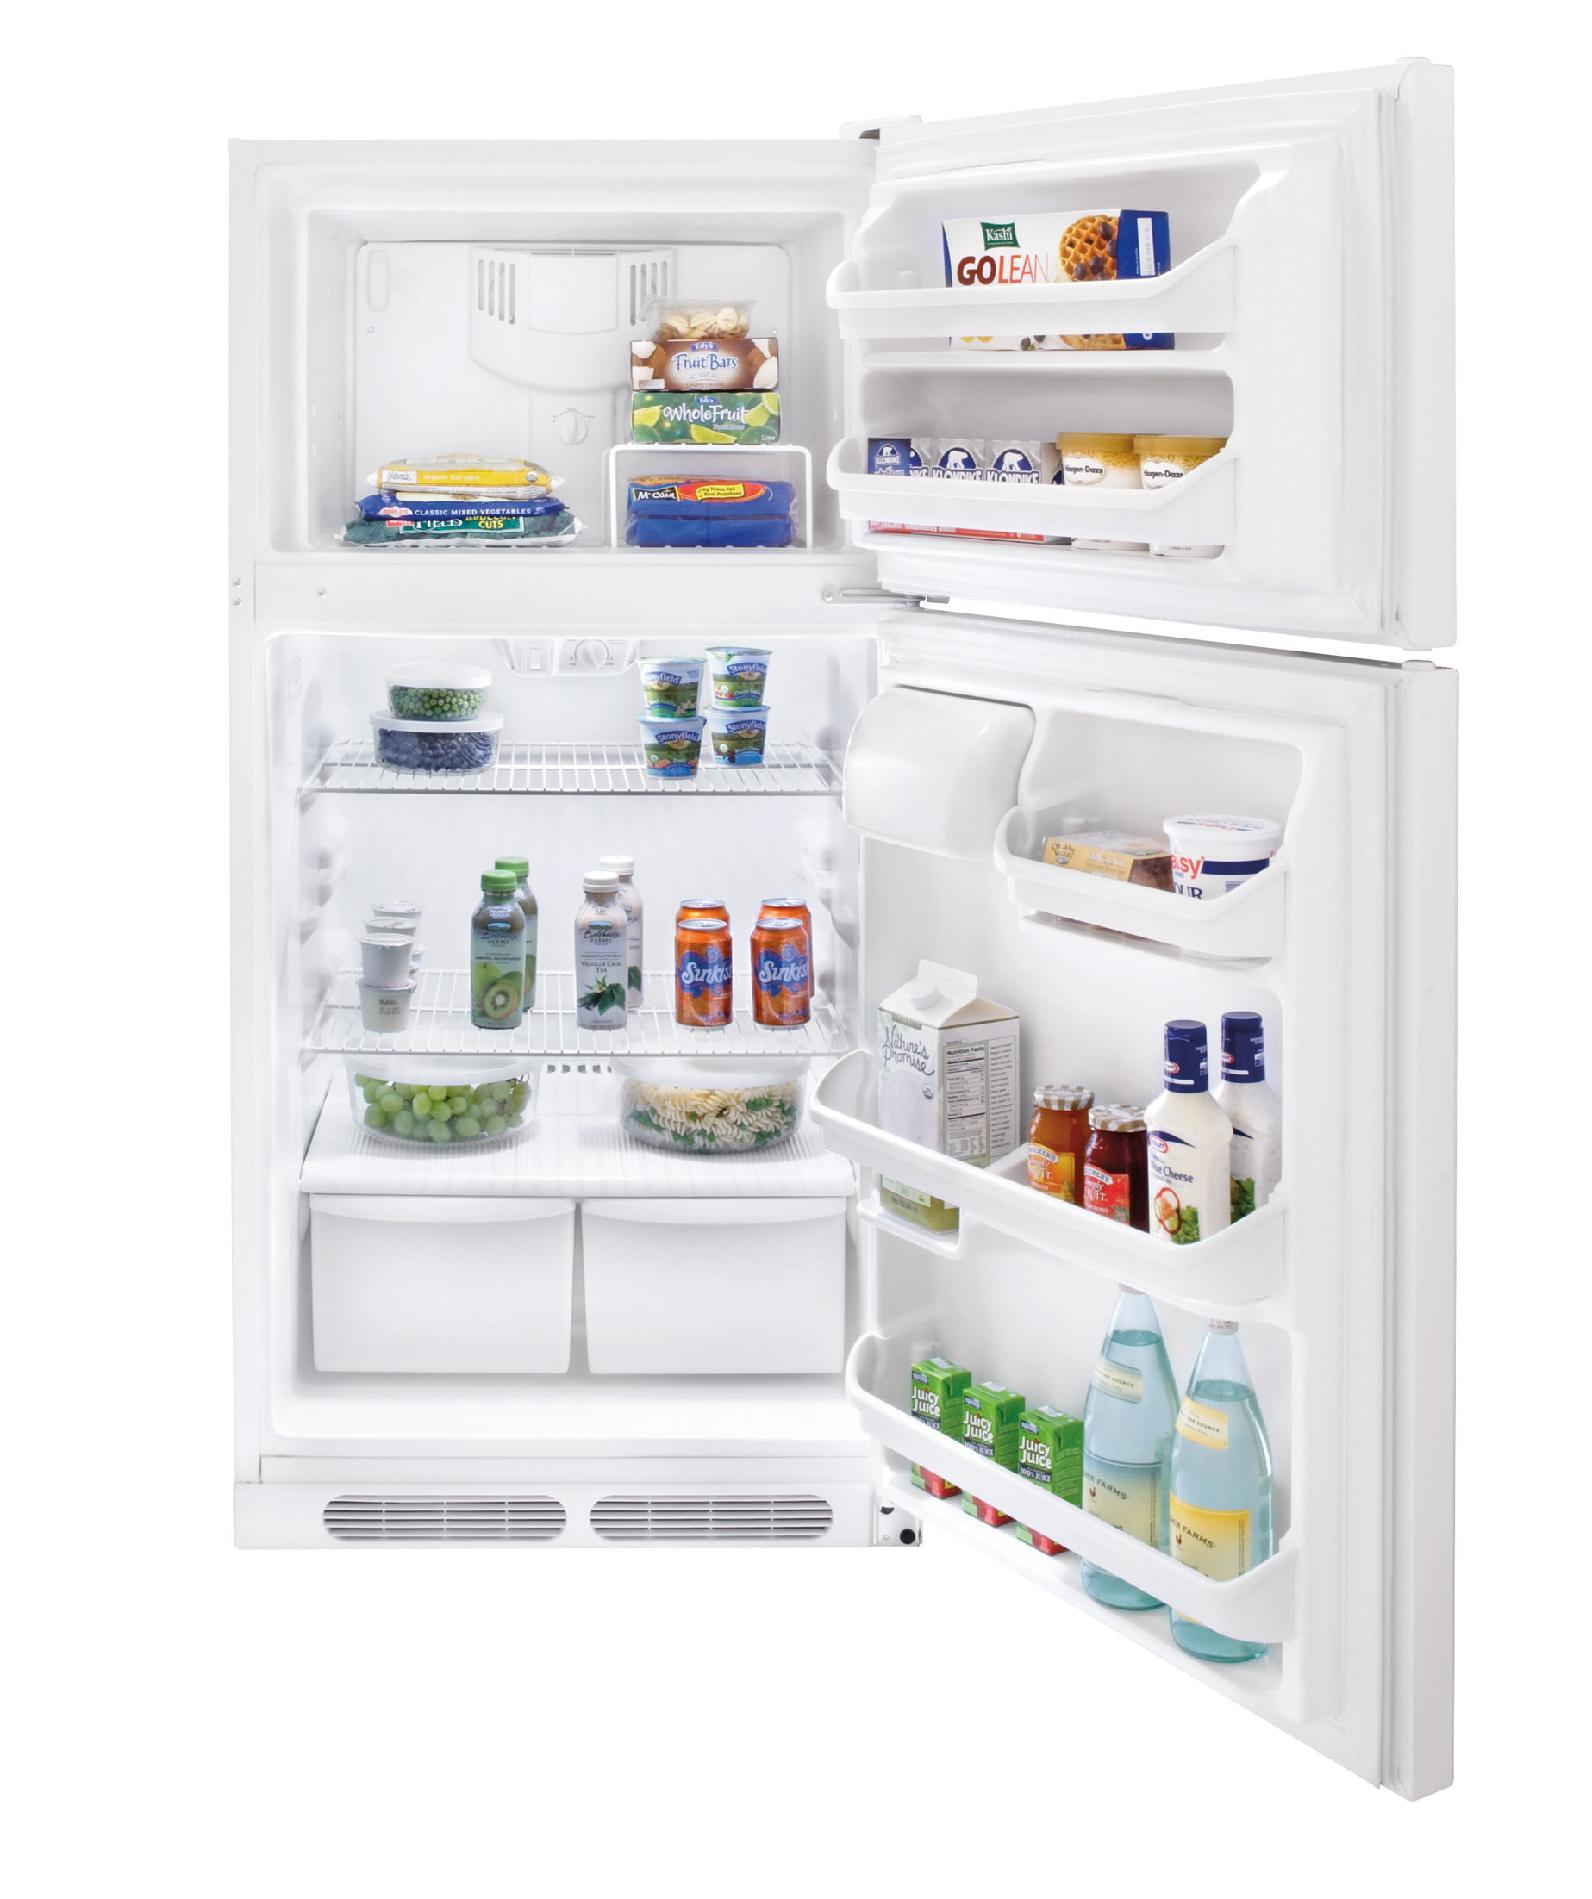 Frigidaire 14.8 cu. ft. Top-Freezer Refrigerator - White